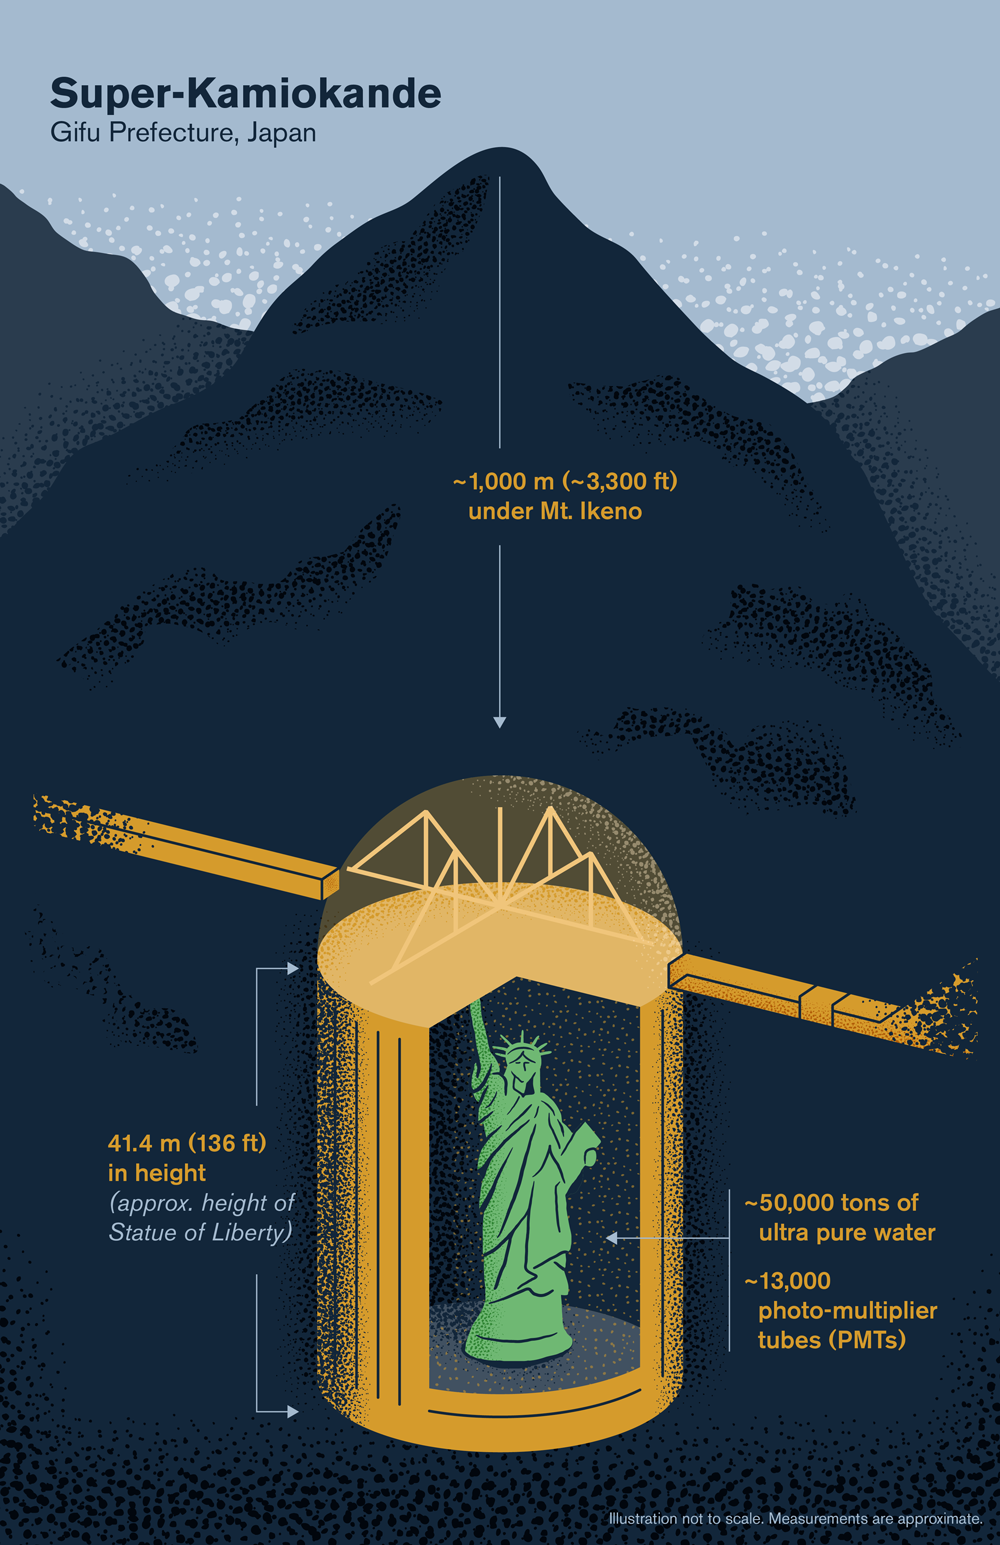 Illustration of the Super-K detector located ~1000 meters under Mt. Ikeno and about the same height as the Statue of Liberty